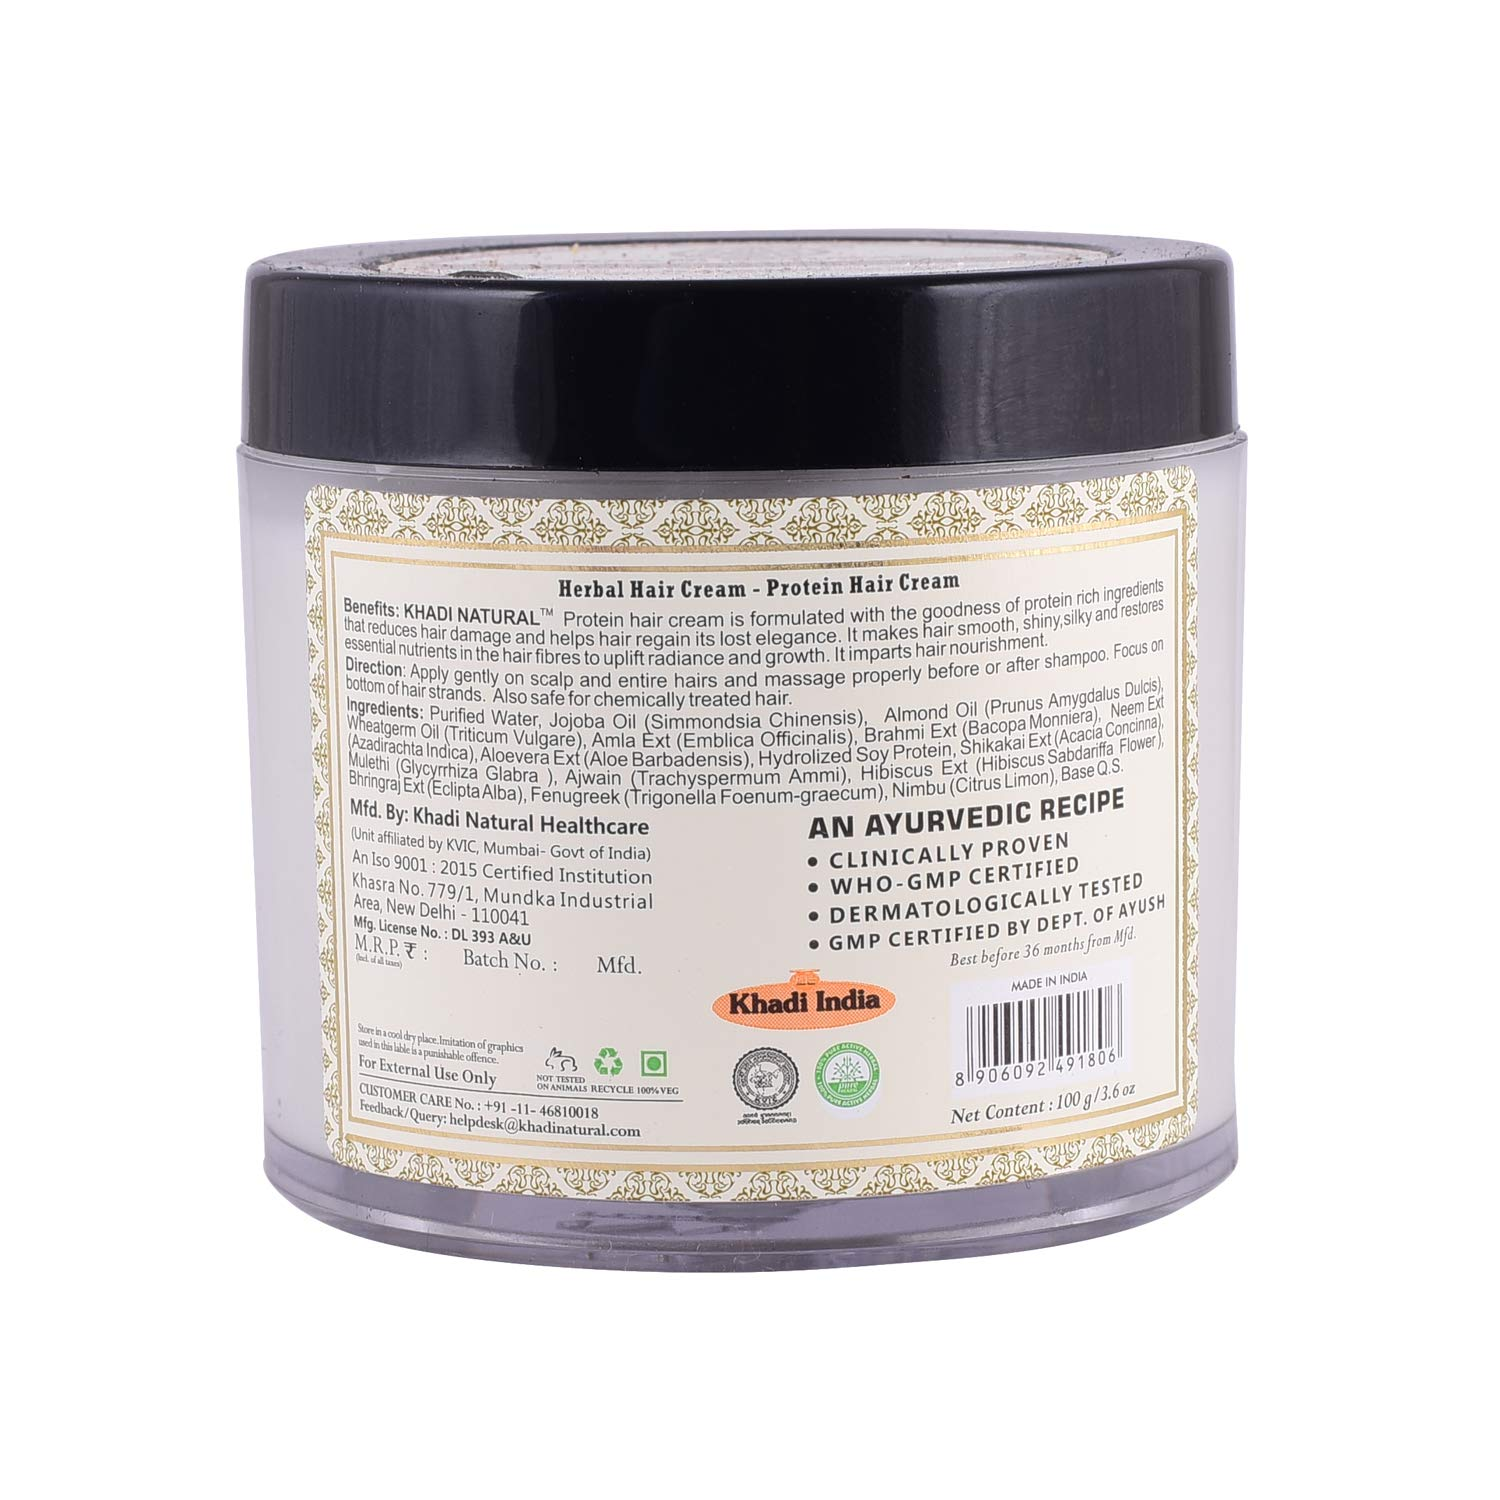 Buy Khadi Natural Herbal Protein Hair Cream 100g Online At Low